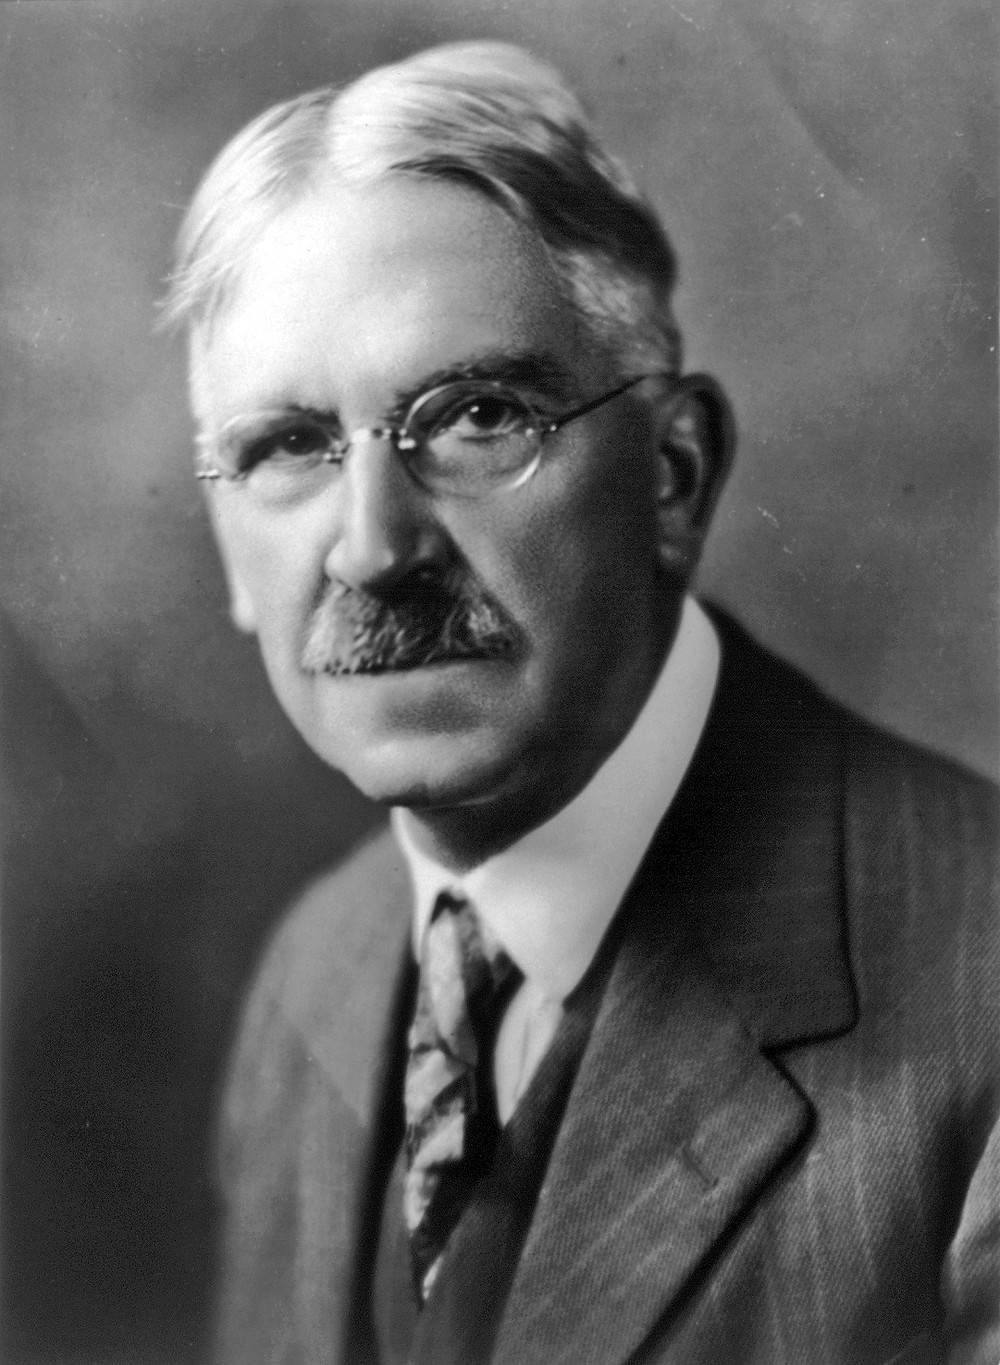 Bust portrait of John Dewey, facing slightly left